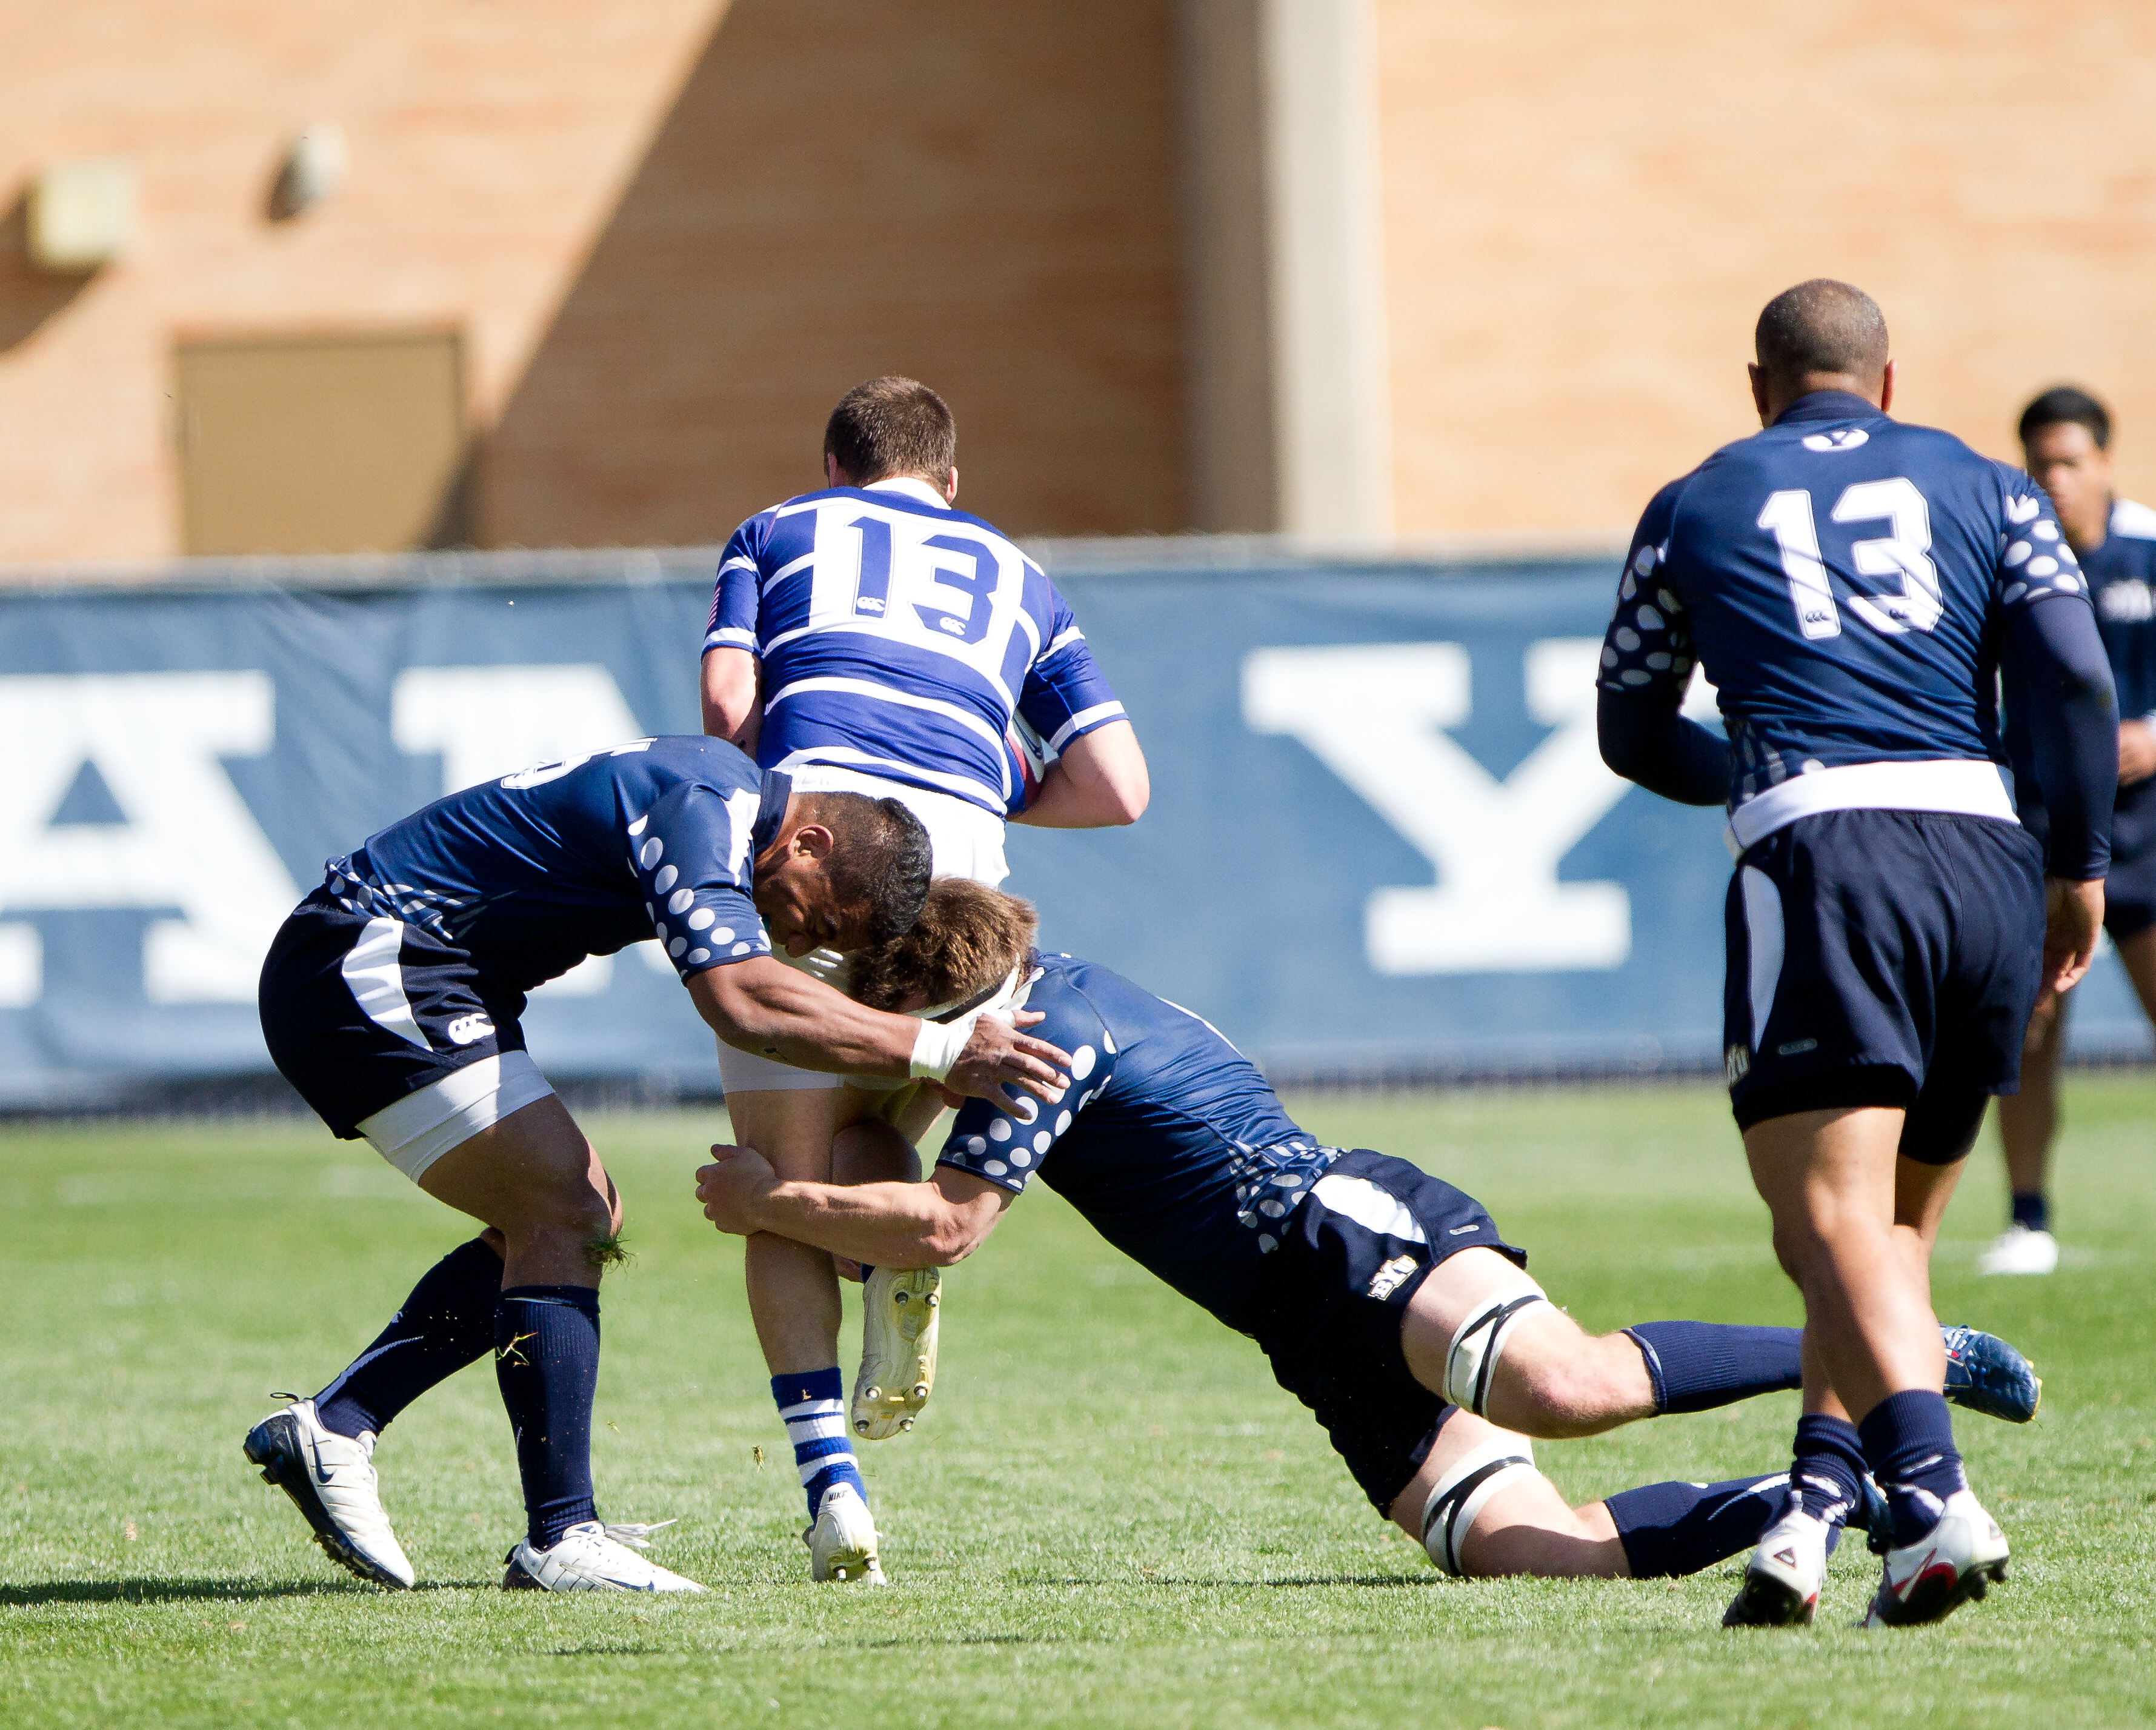 Two BYU players take down an Airforce player during a game at South Field.